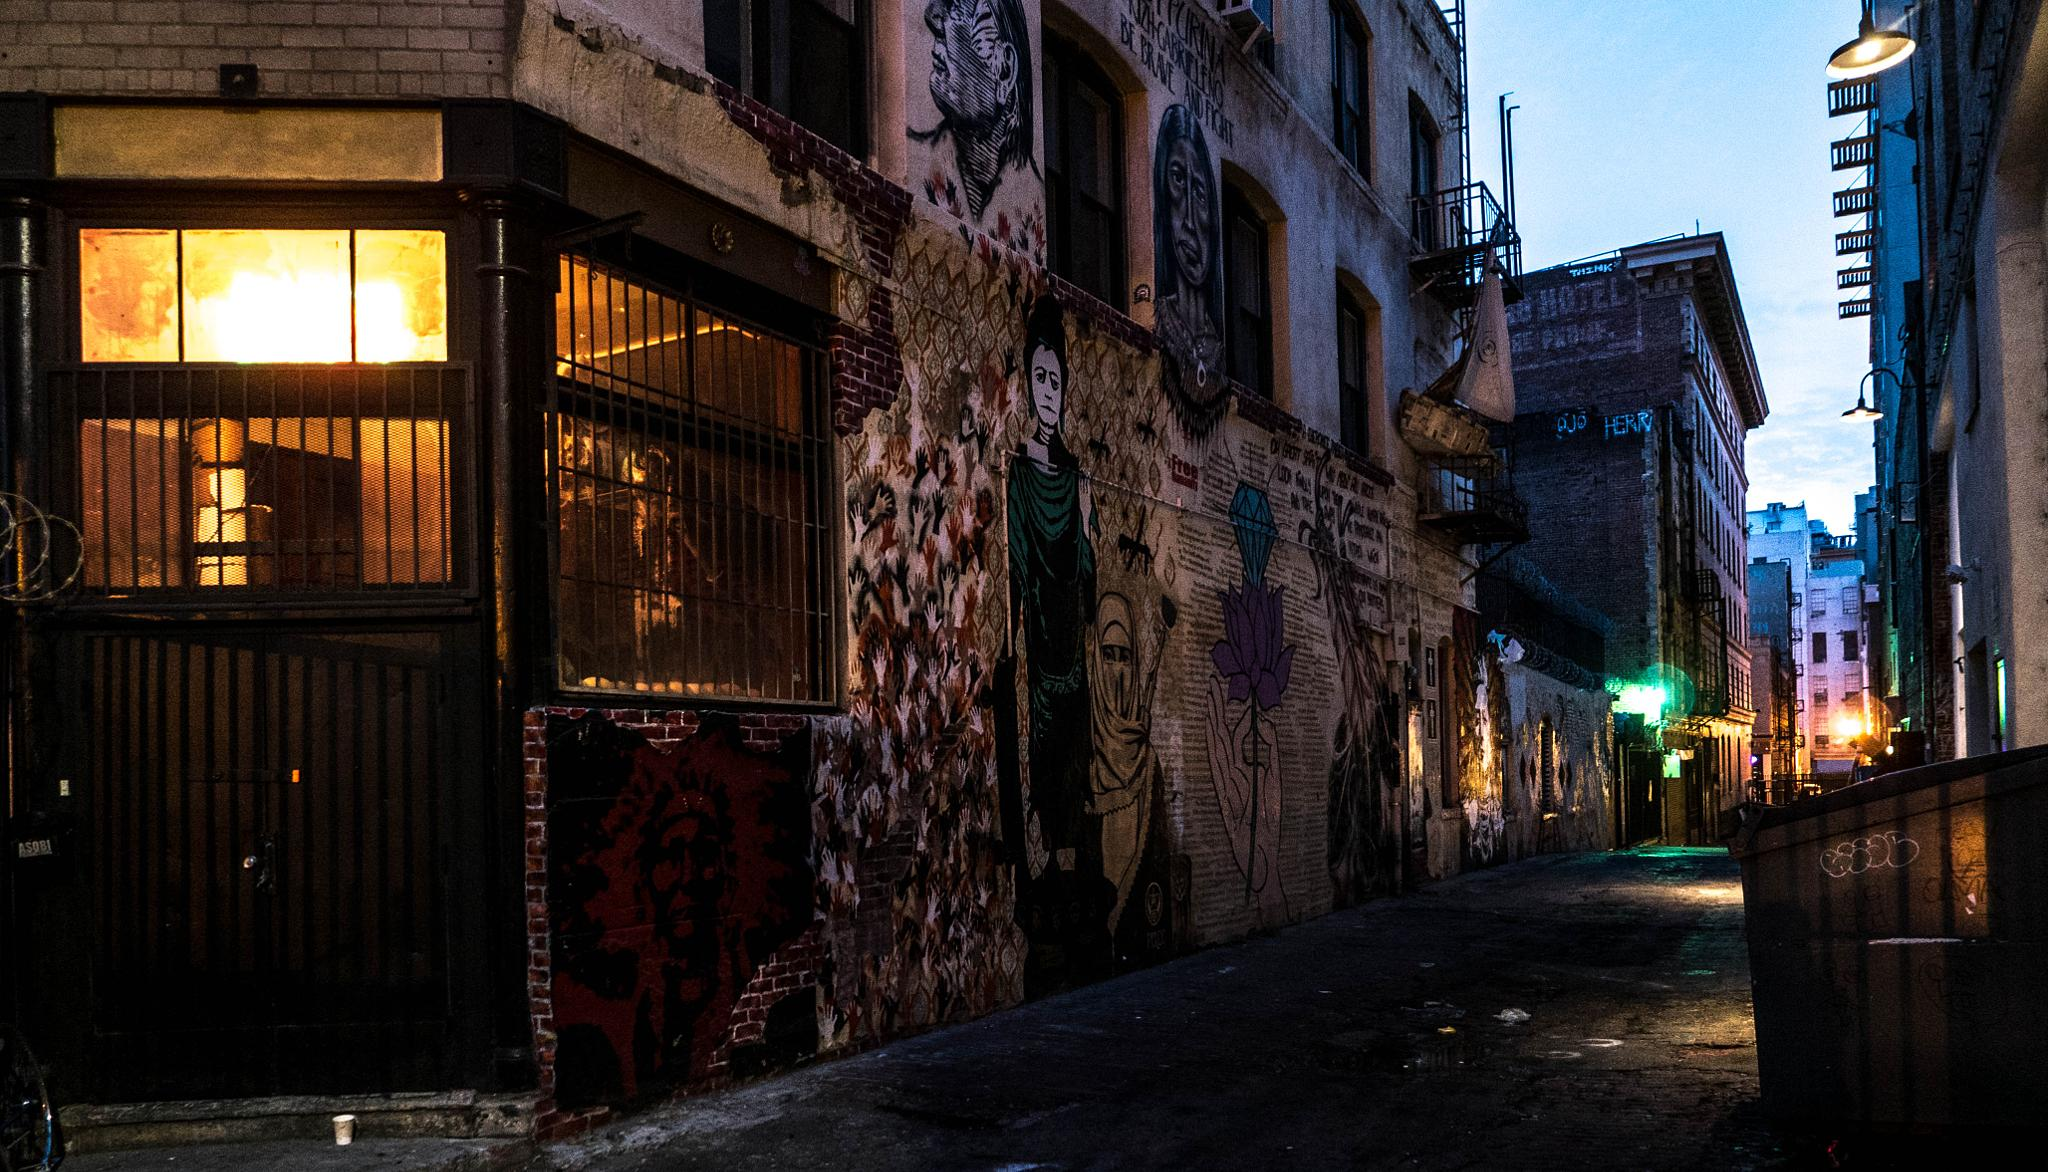 Indian Alley by BarbaraHuber